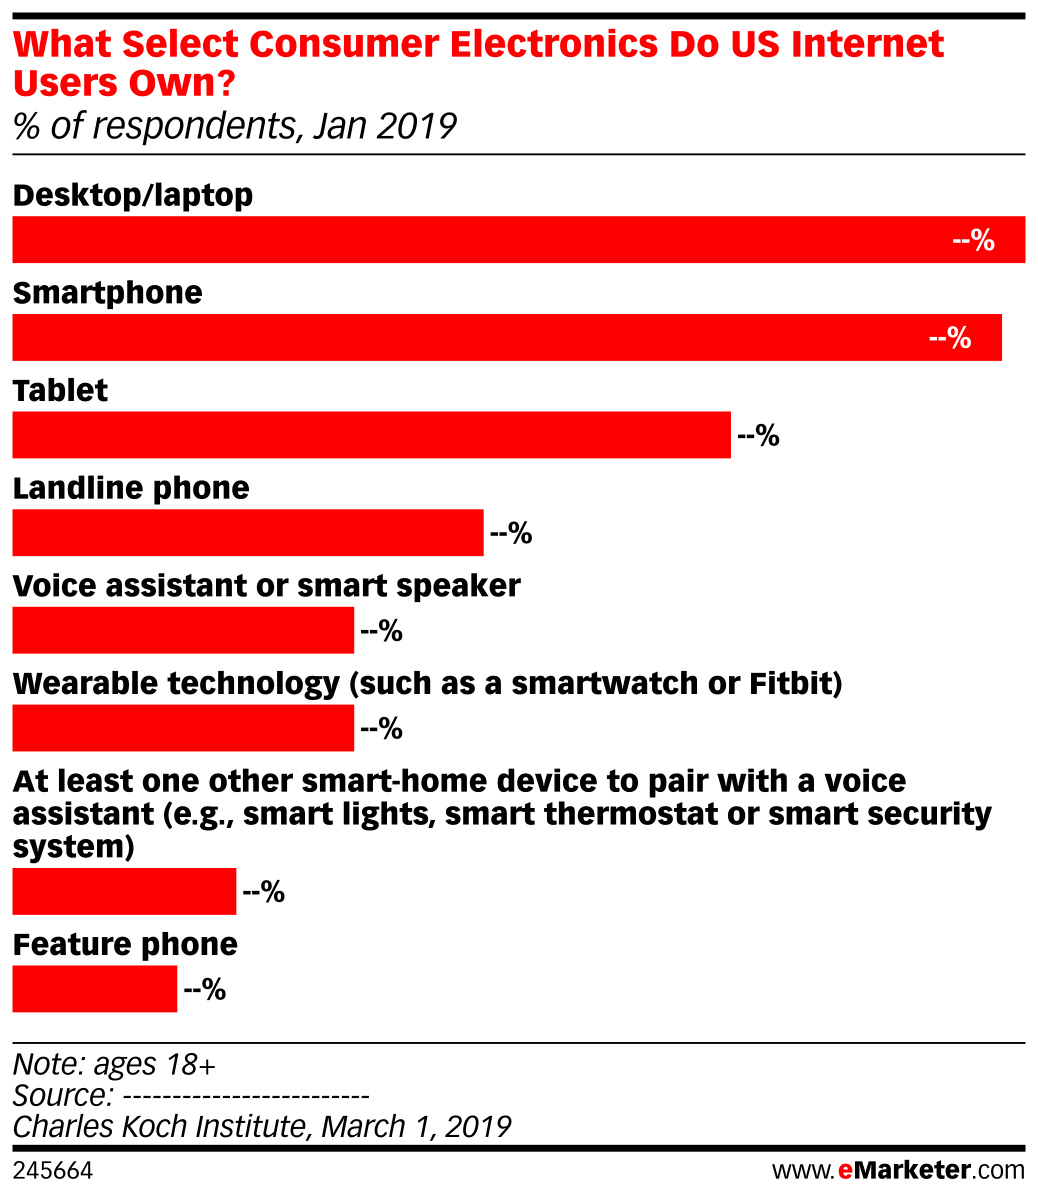 What Select Consumer Electronics Do US Internet Users Own? (% of respondents, Jan 2019)